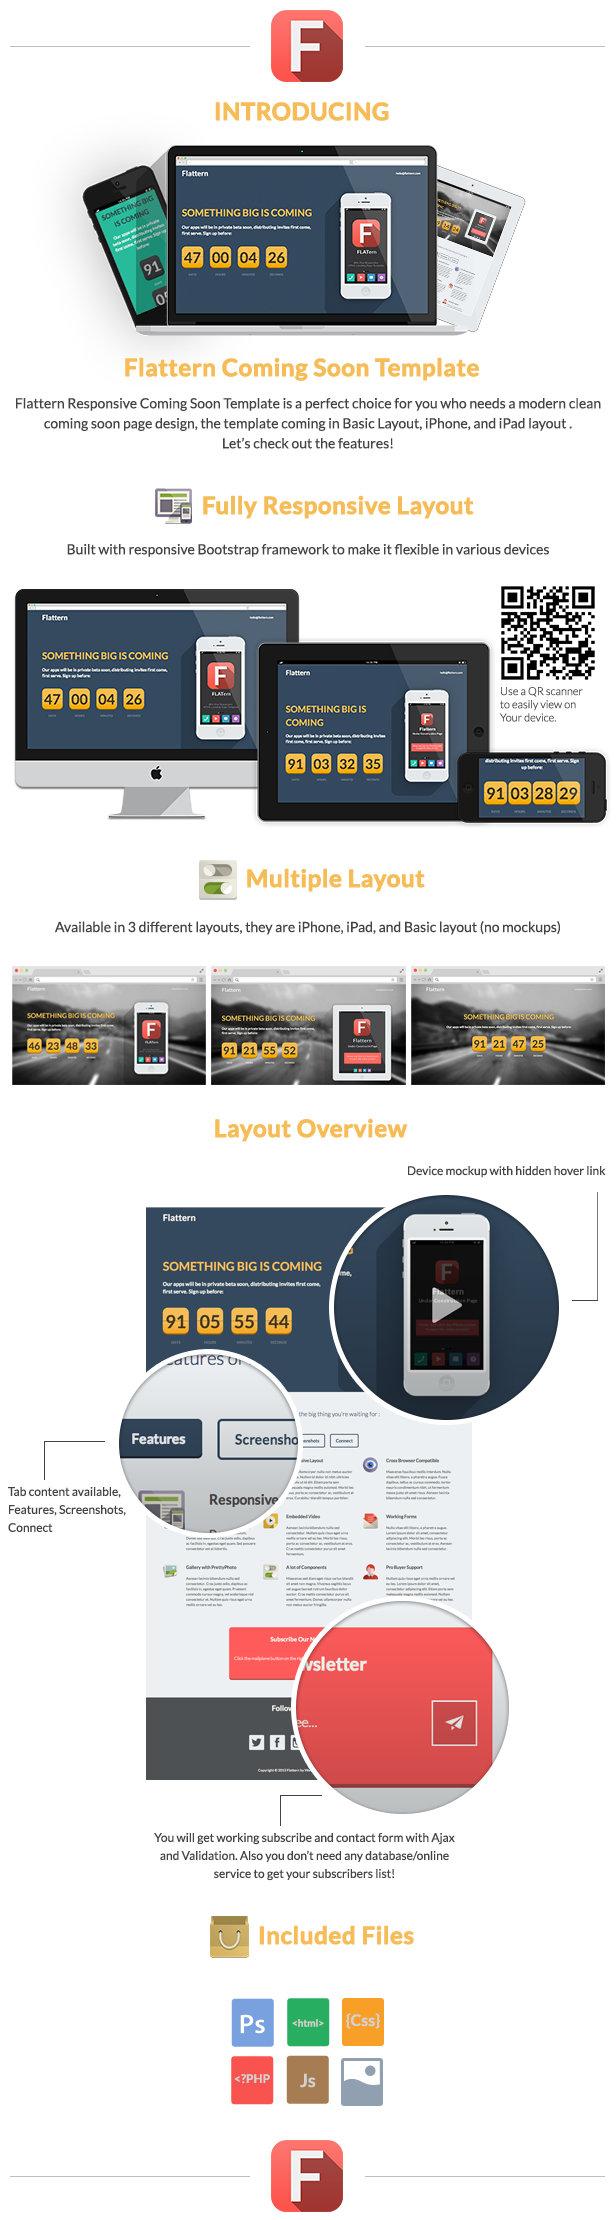 Flattern - Responsive Coming Soon Template